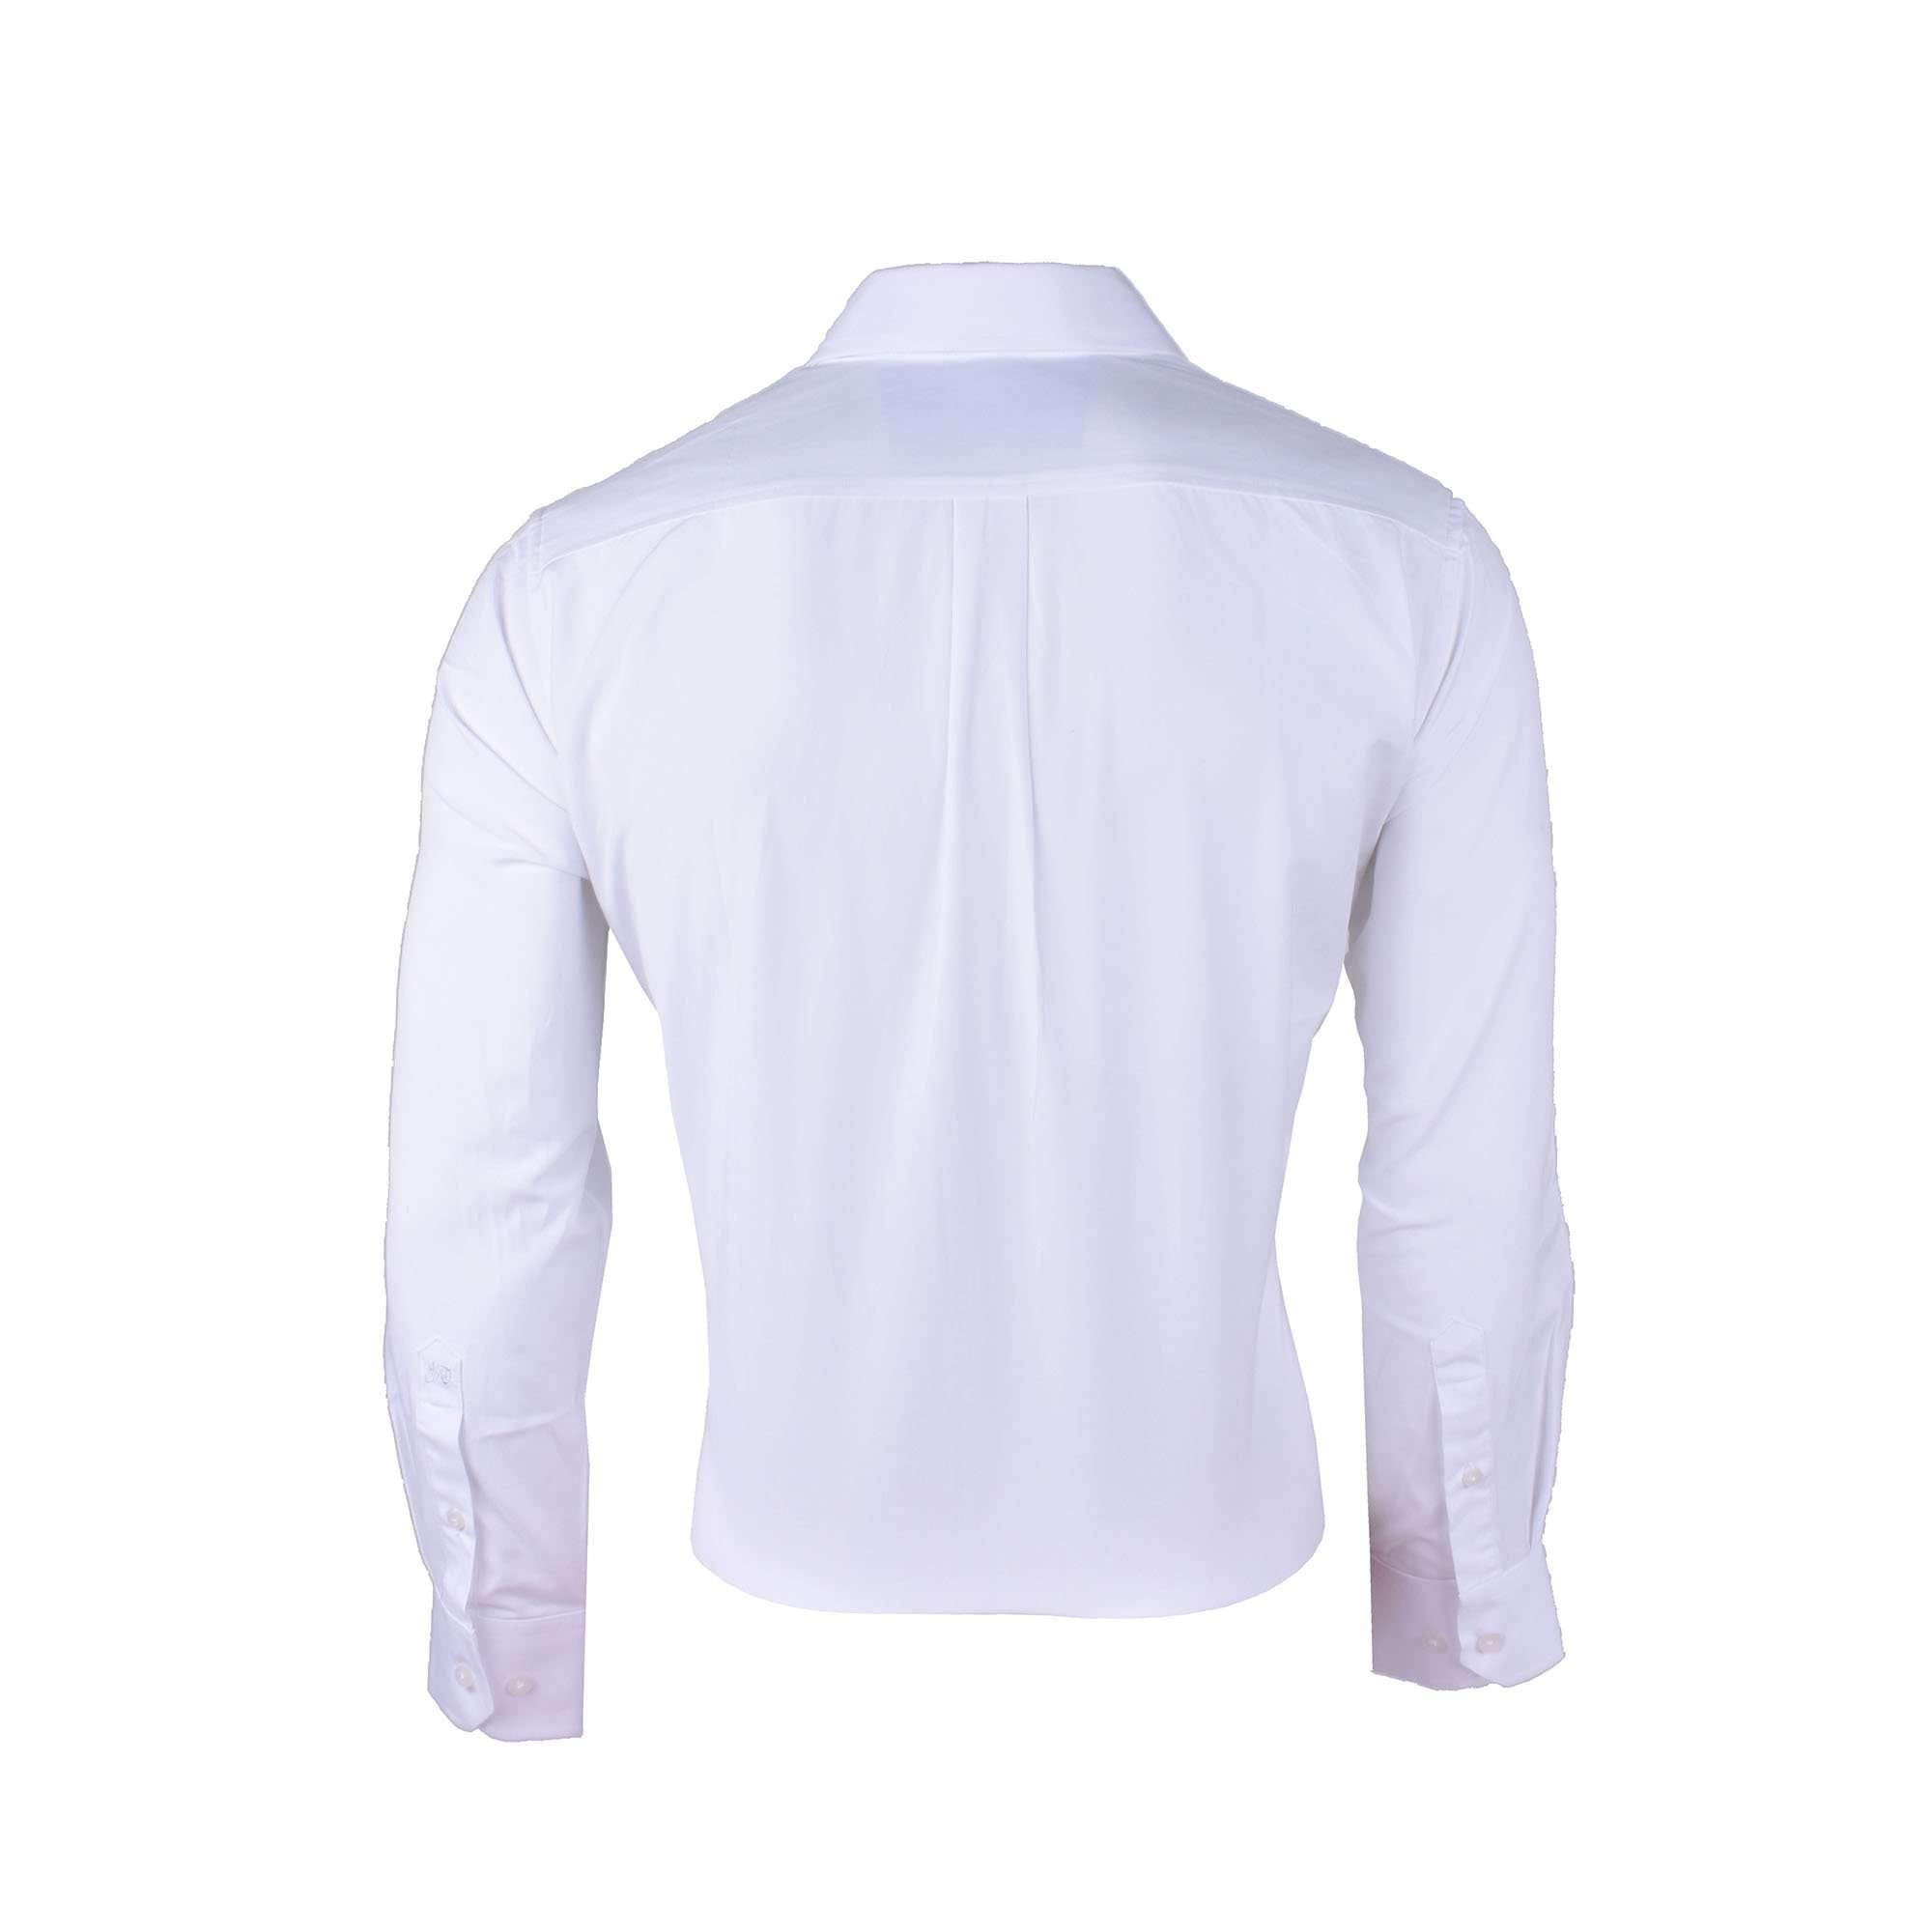 John Master Business Basic Shirt Long Sleeves White 7077000 : Buy John Master online at CMG.MY